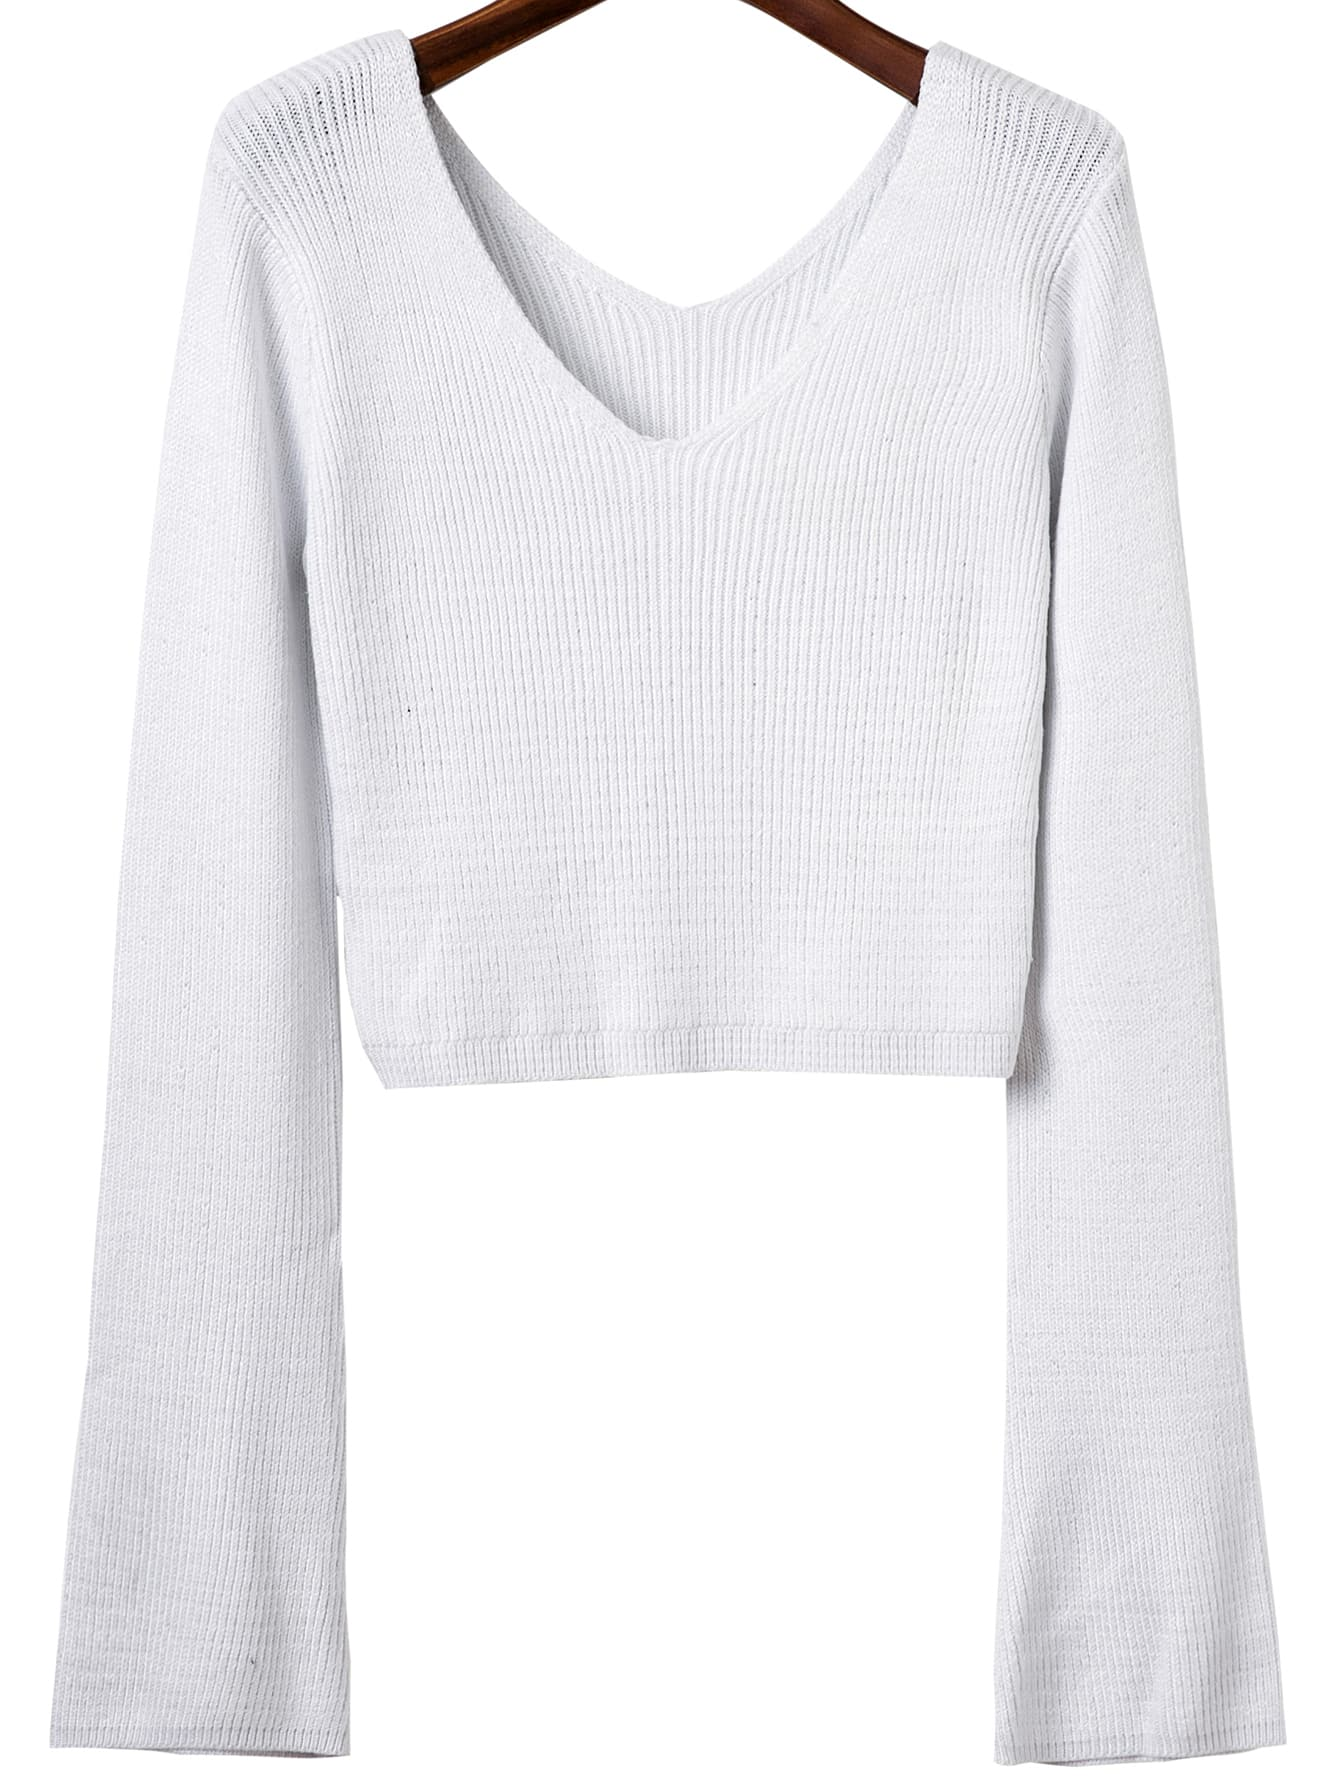 White Double V Back Ribbed Knit Sweater sweater160806211